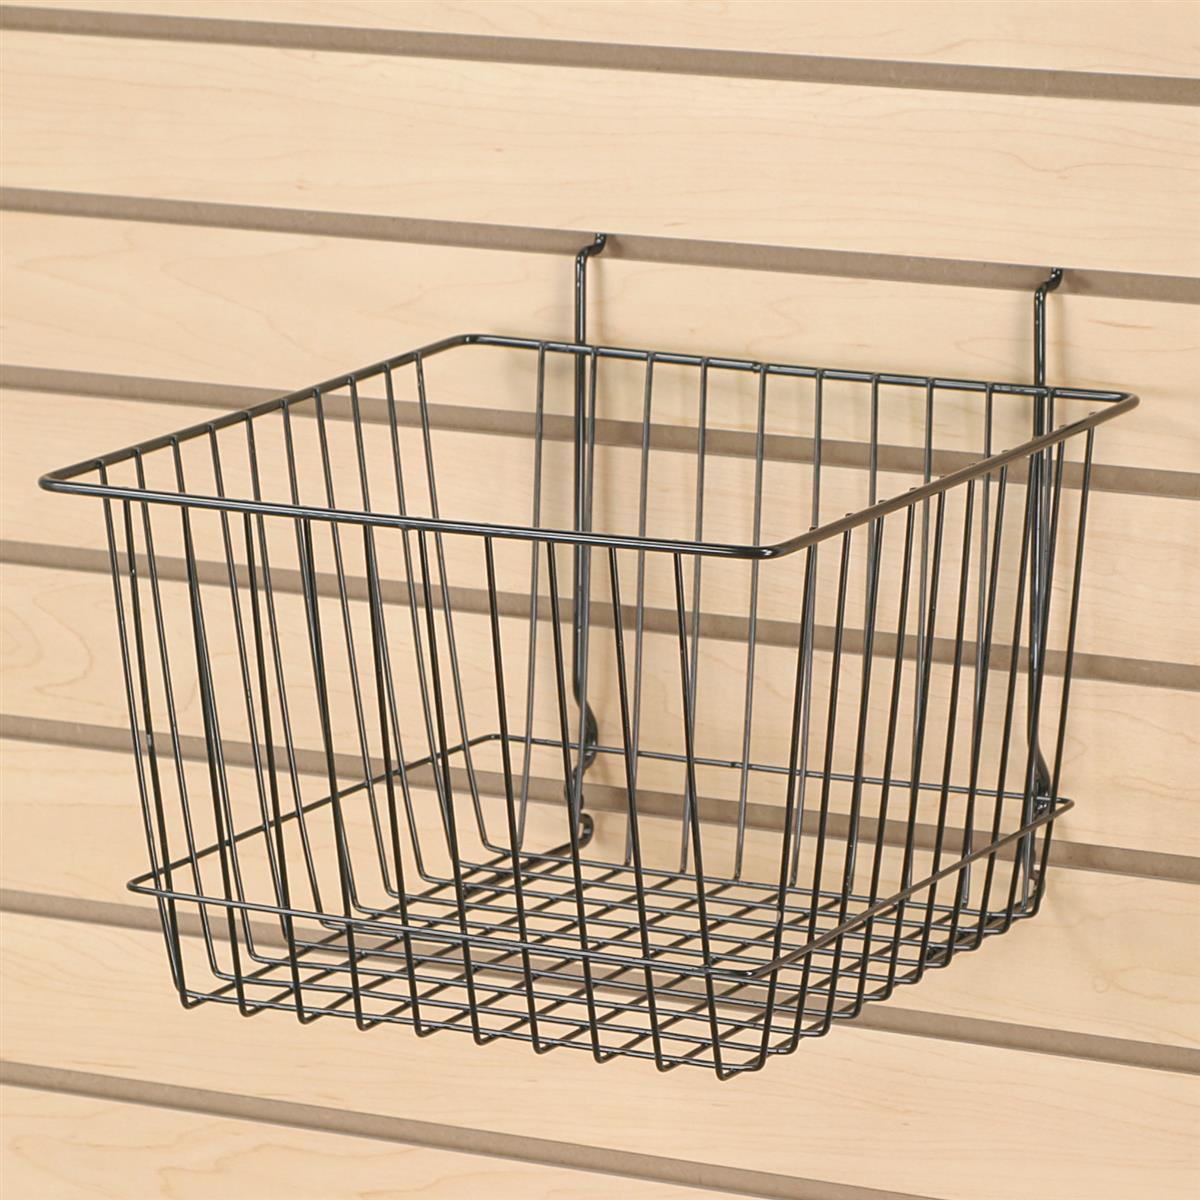 Wire Baskets for Slatwall or Gridwall Holders for Bulk Displays